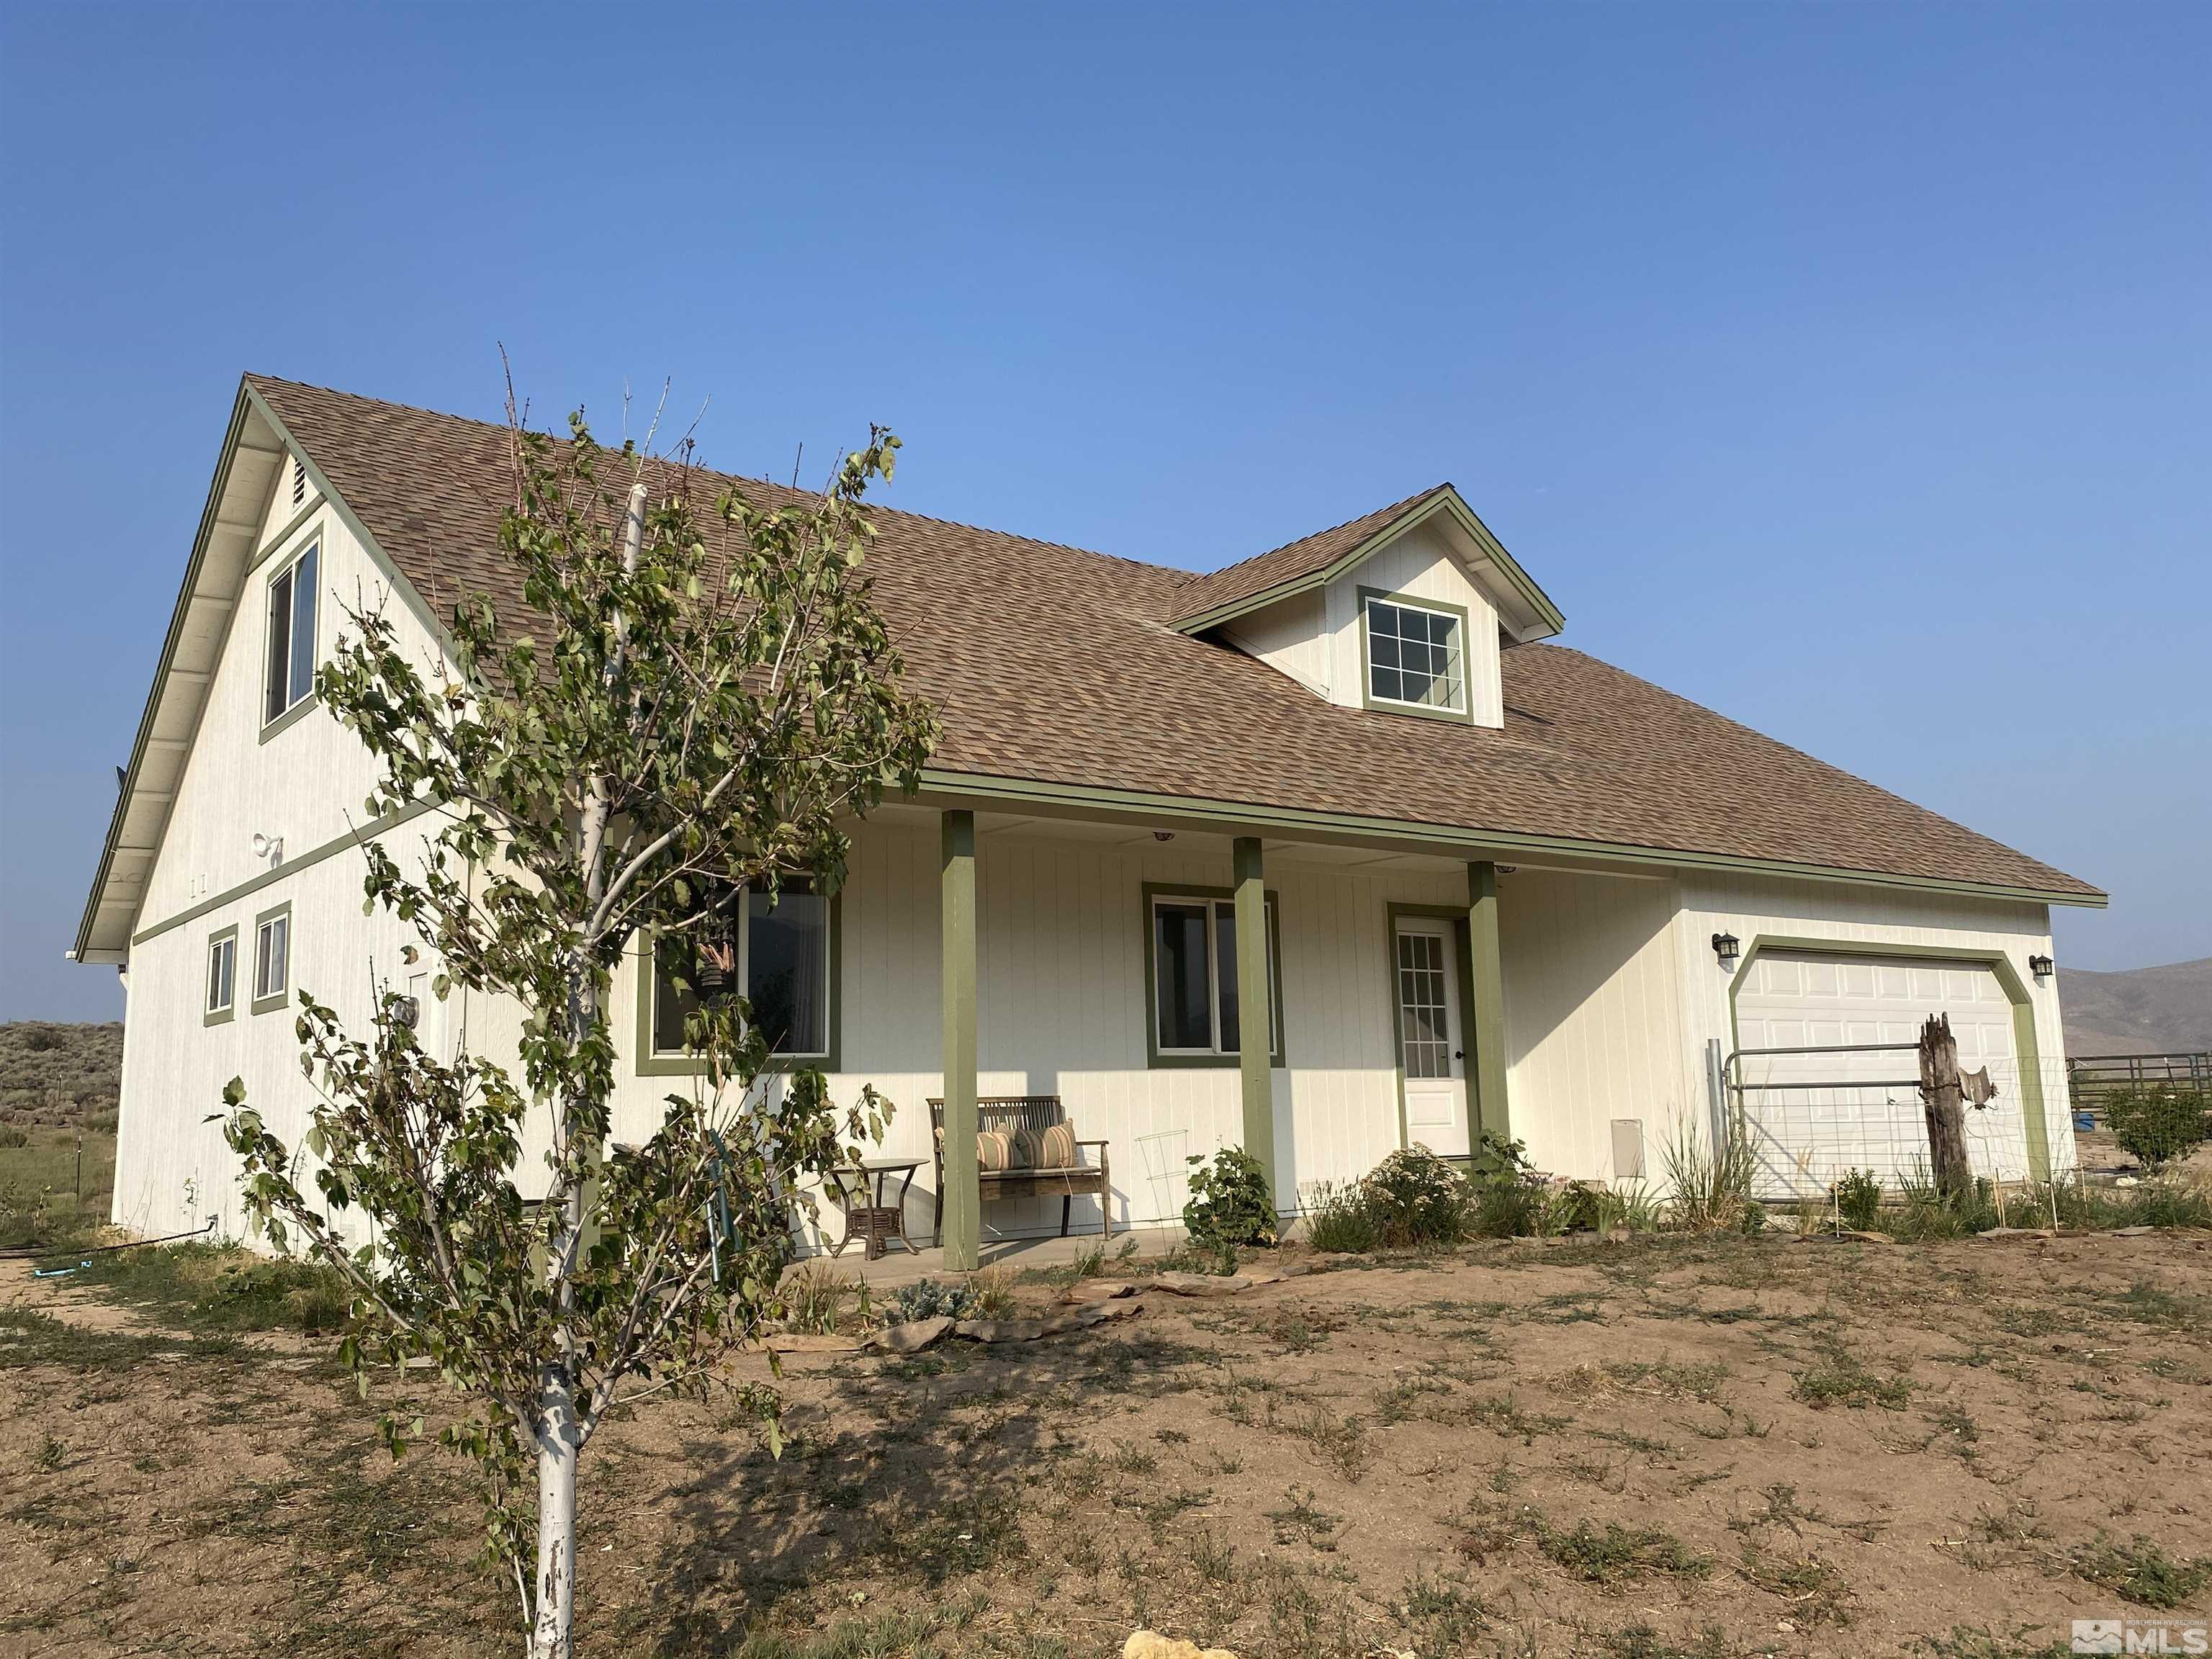 Image for 16000 N Red Rock Rd, Reno, NV 89508